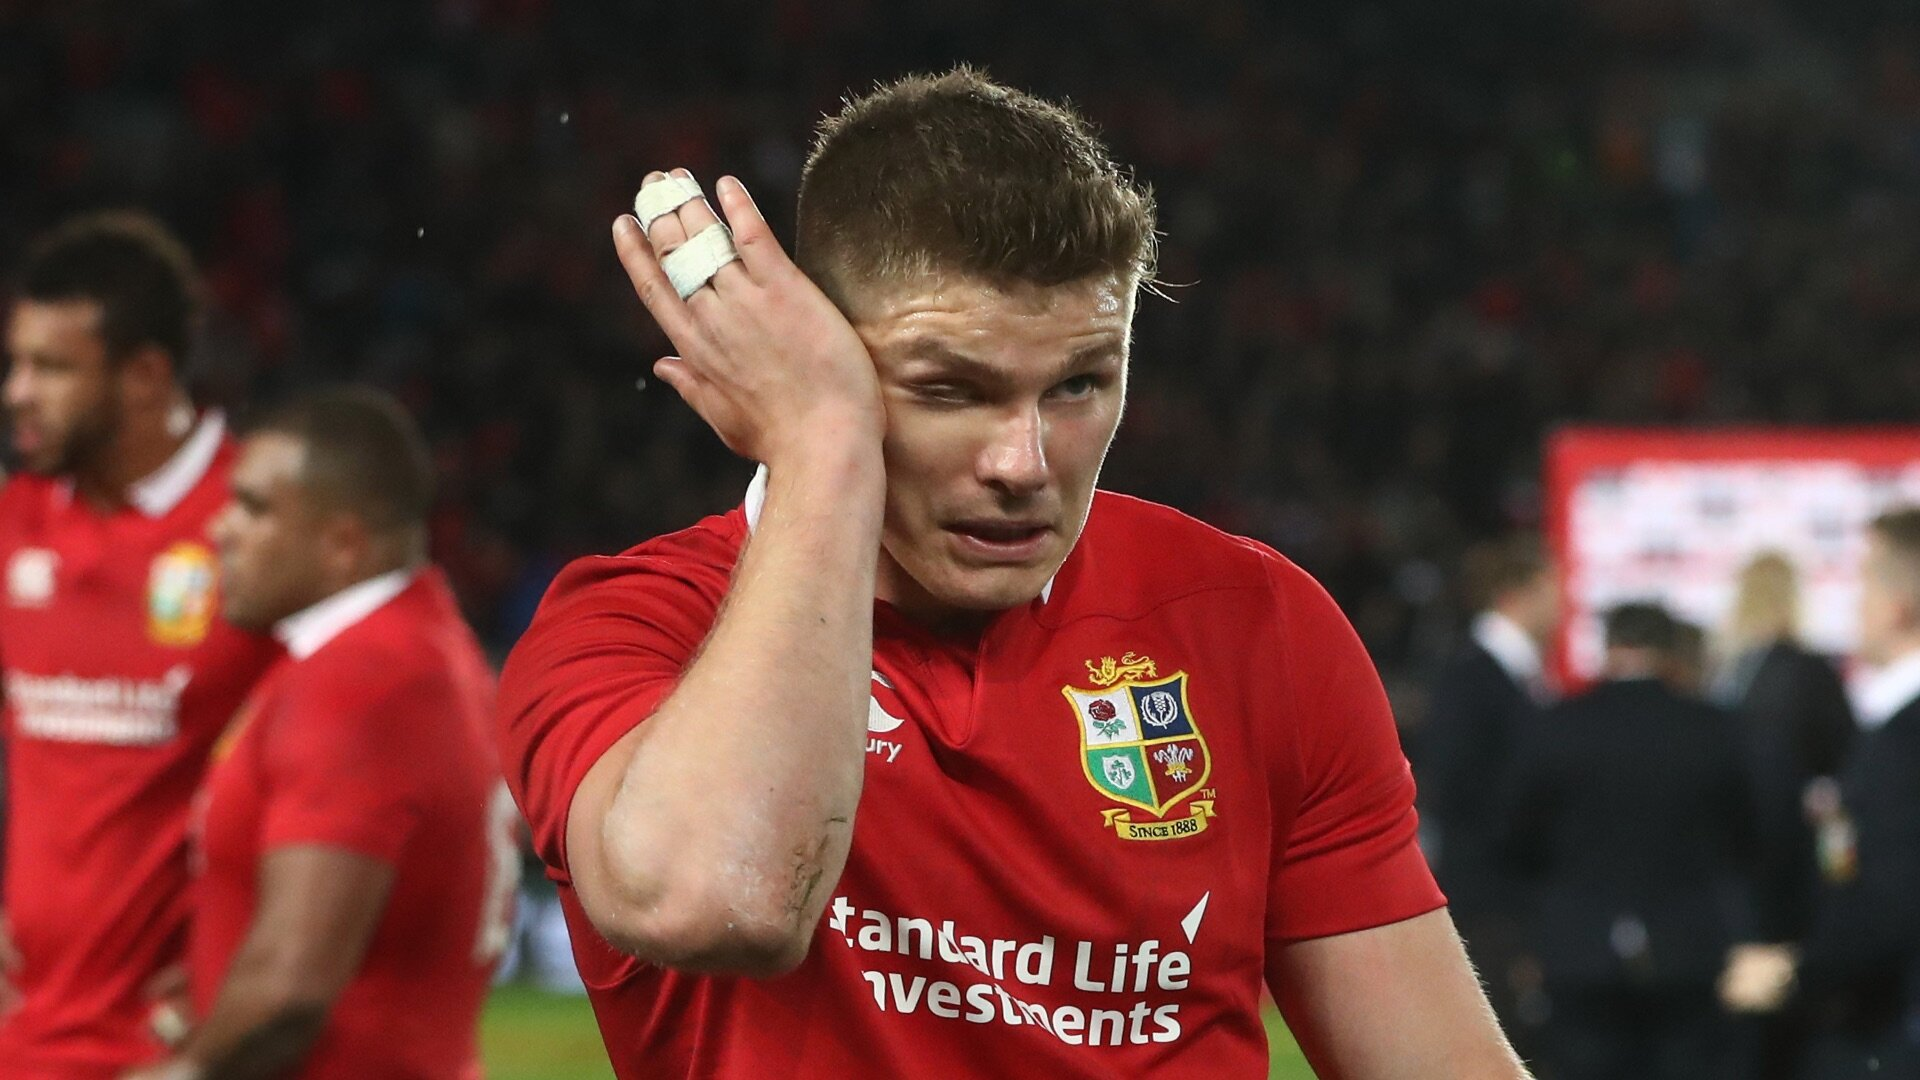 Brian O'Driscoll picks 2021 Lions backline: 4 England and just 1 each from Ireland, Scotland and Wales